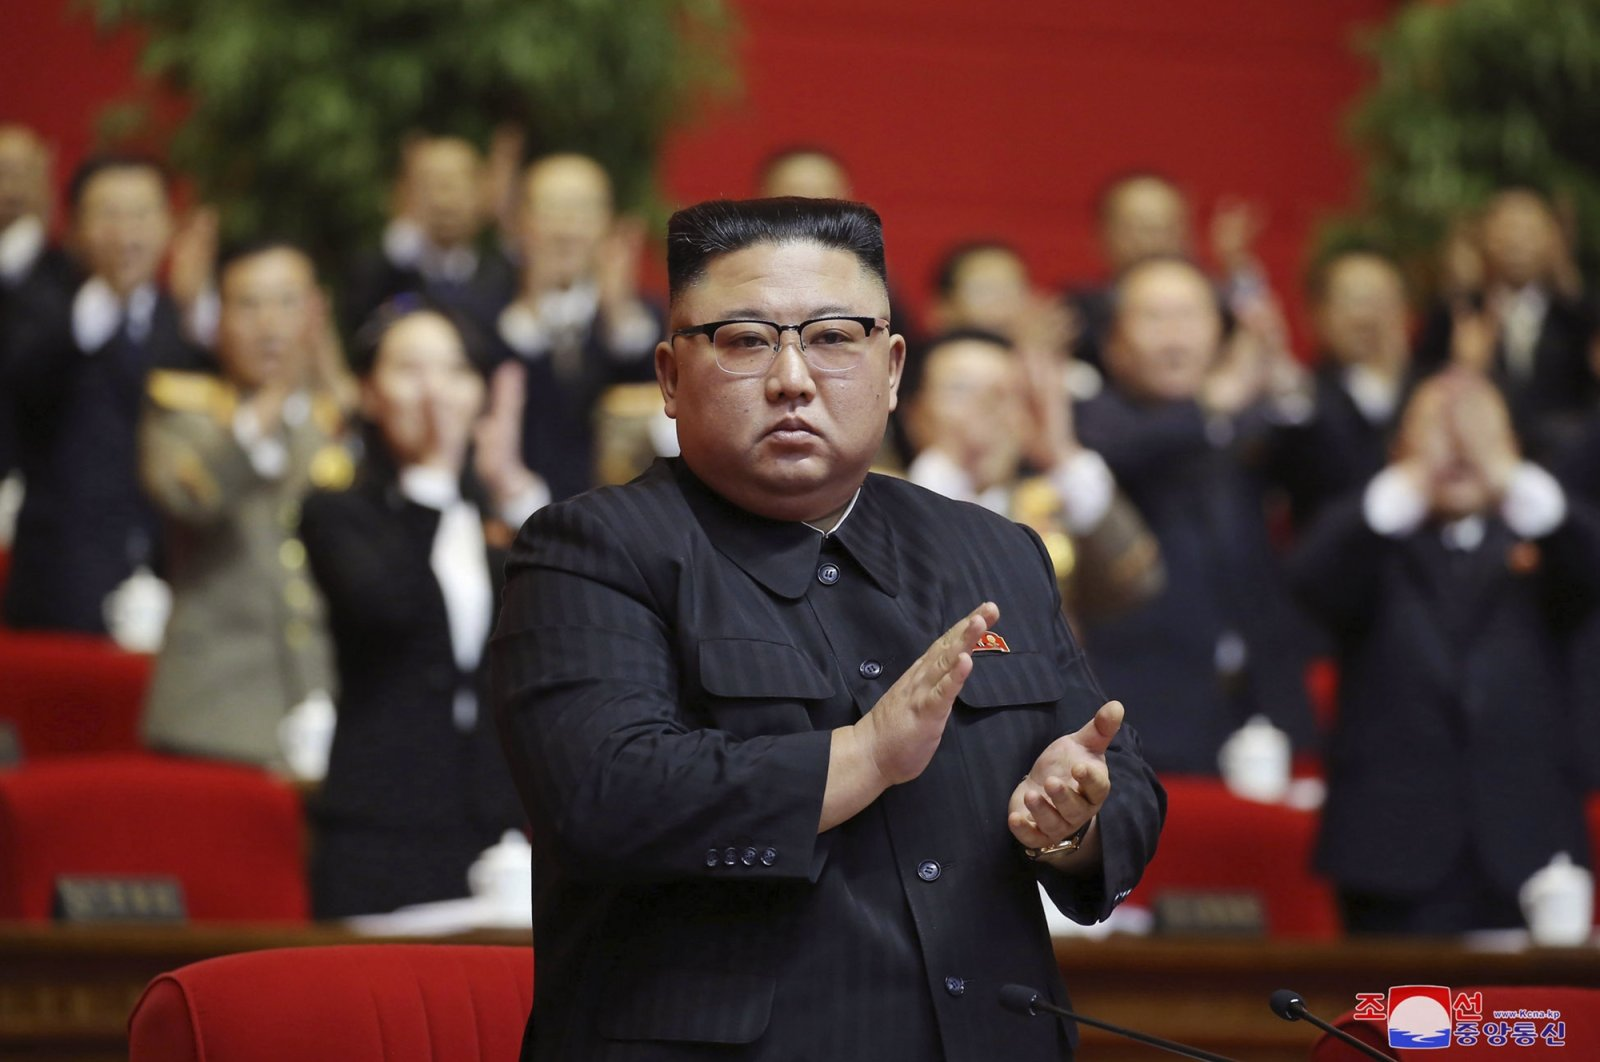 In this photo provided by the North Korean government, North Korean leader Kim Jong Un claps his hands at the ruling party congress in Pyongyang, North Korea, Jan. 10, 2021. (Korean Central News Agency via AP)